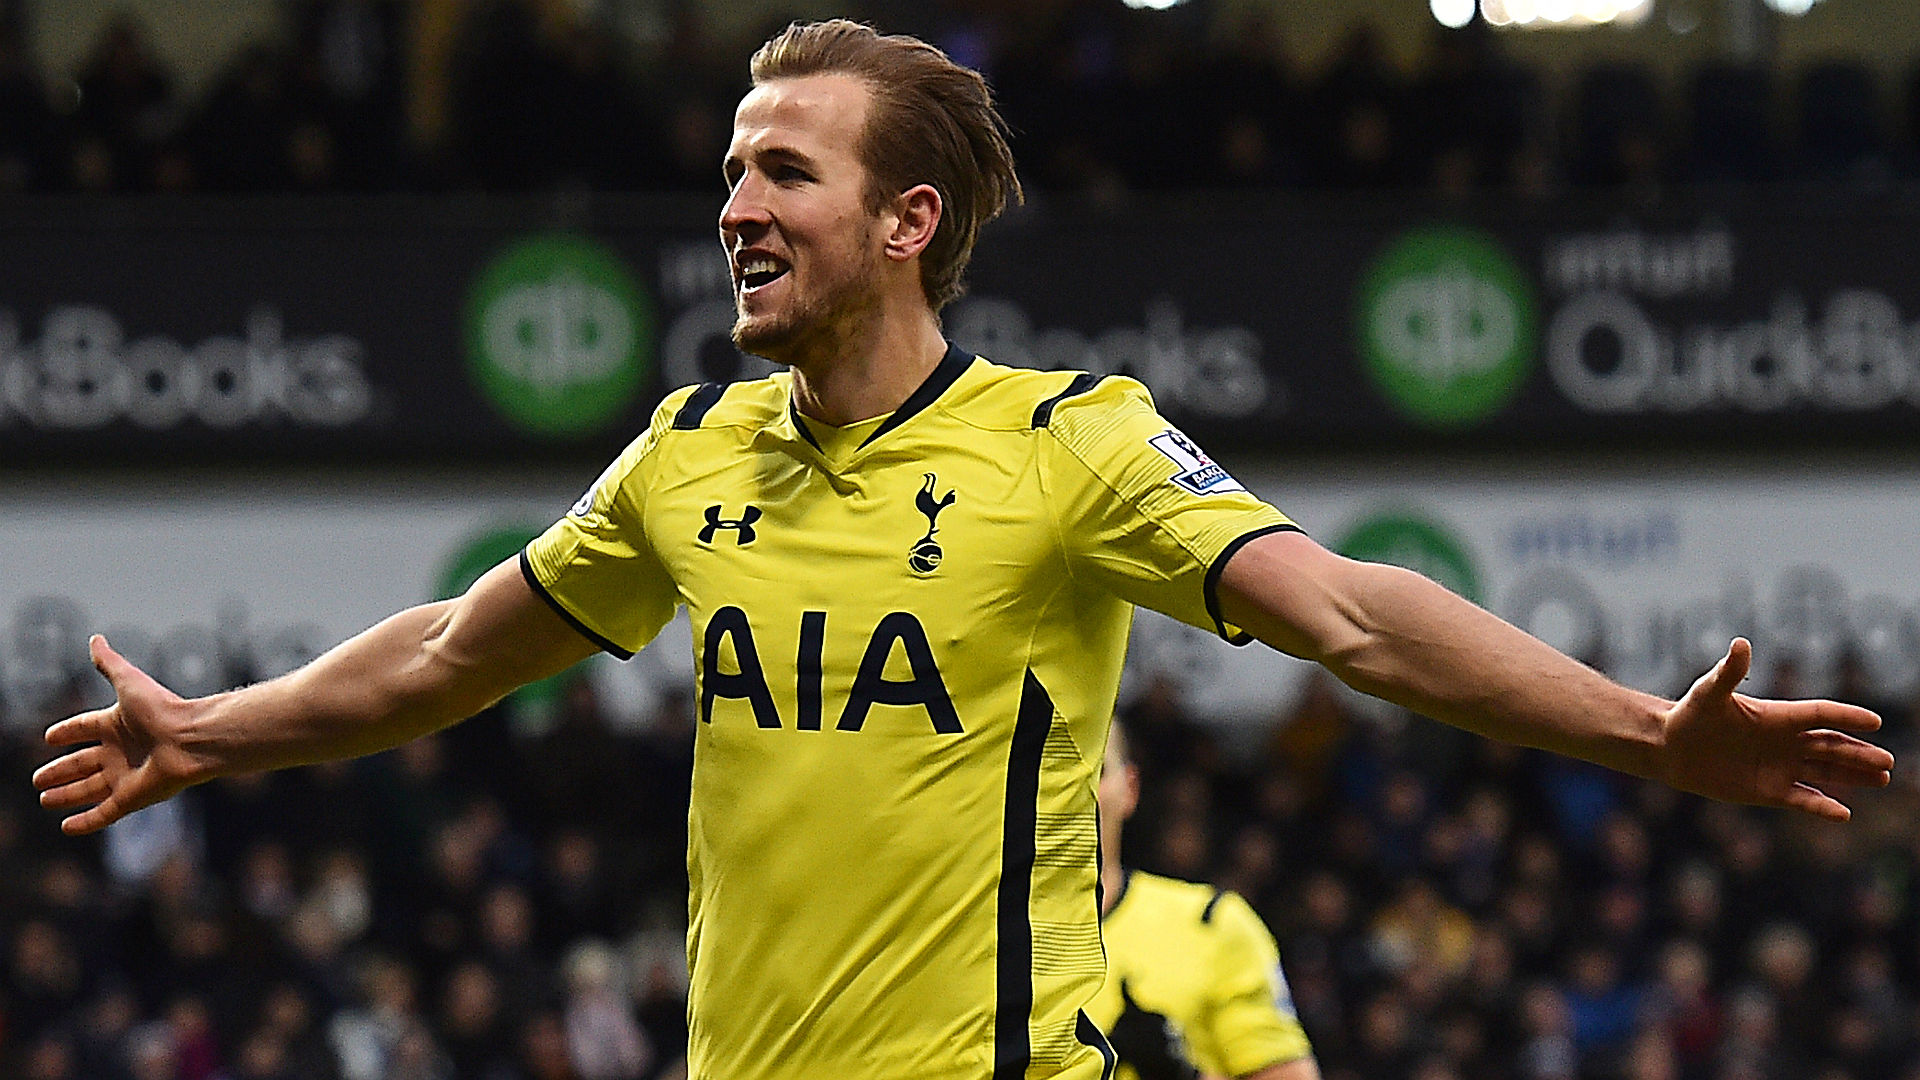 Liverpool  vs. Tottenham betting lines and pick – Spurs roll into Merseyside